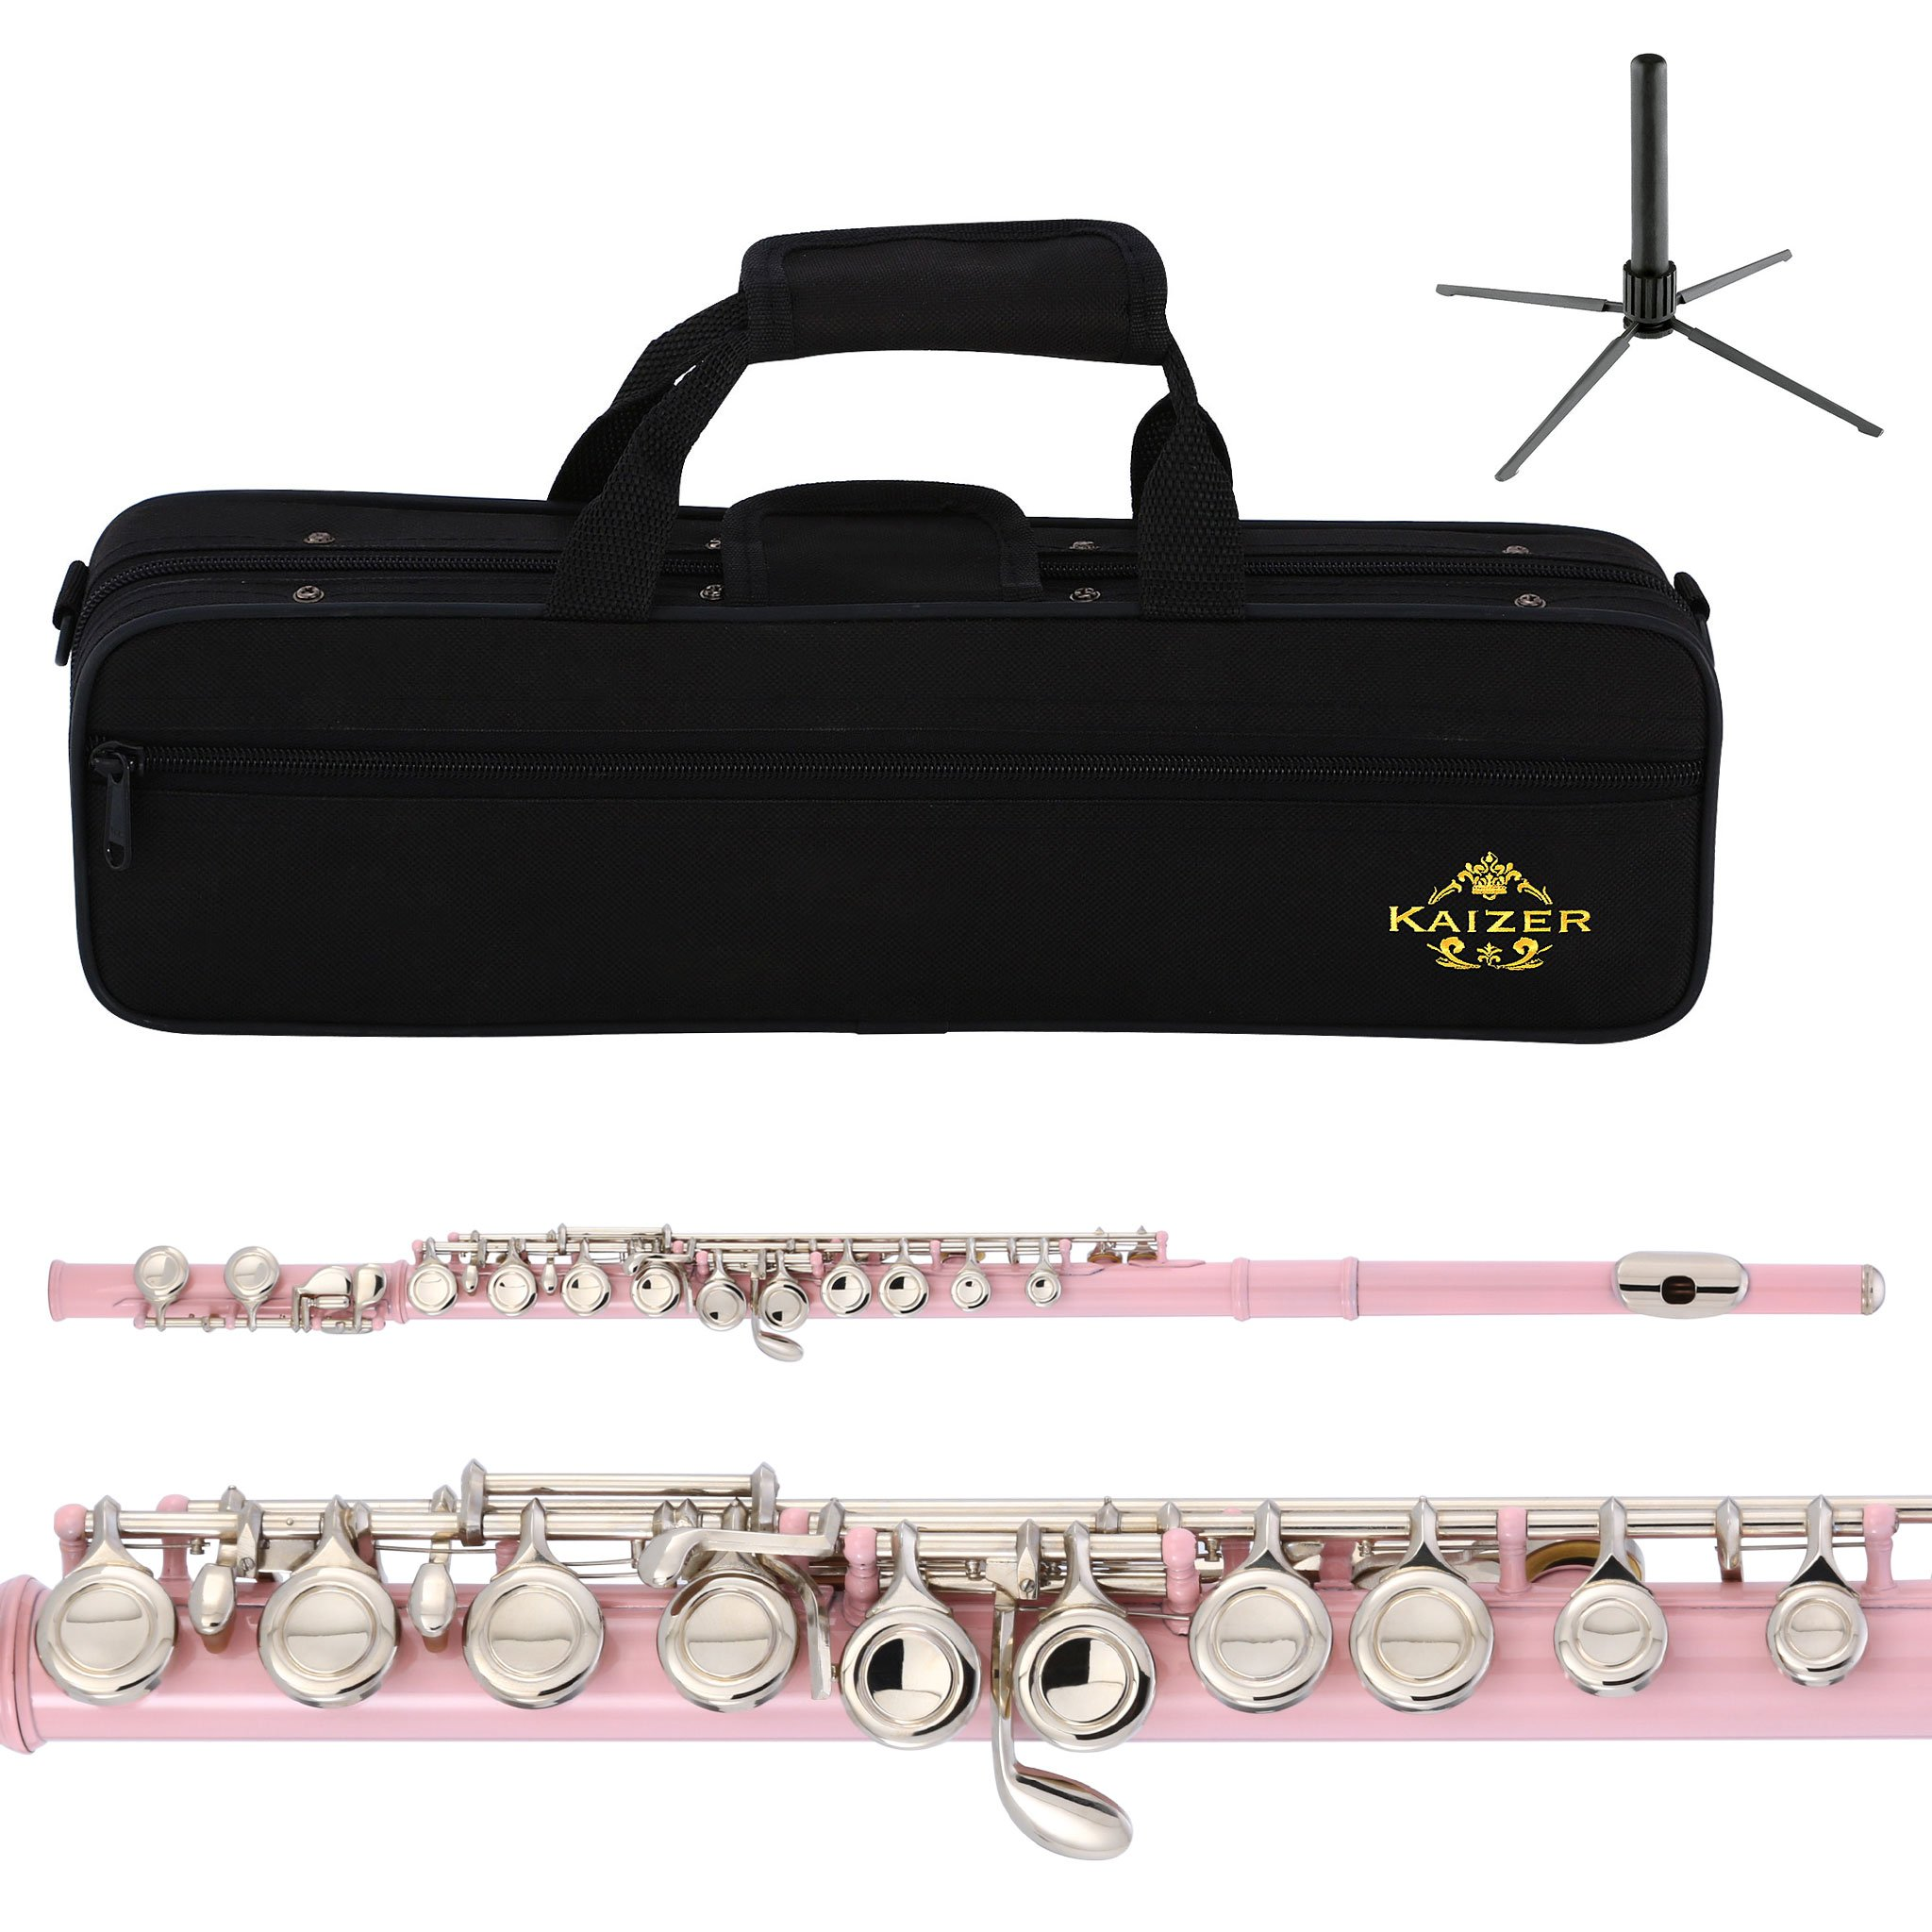 Kaizer Flute C Key Closed Hole Pink Body Silver Plated Keys FLT-1000PKNK by Kaizer